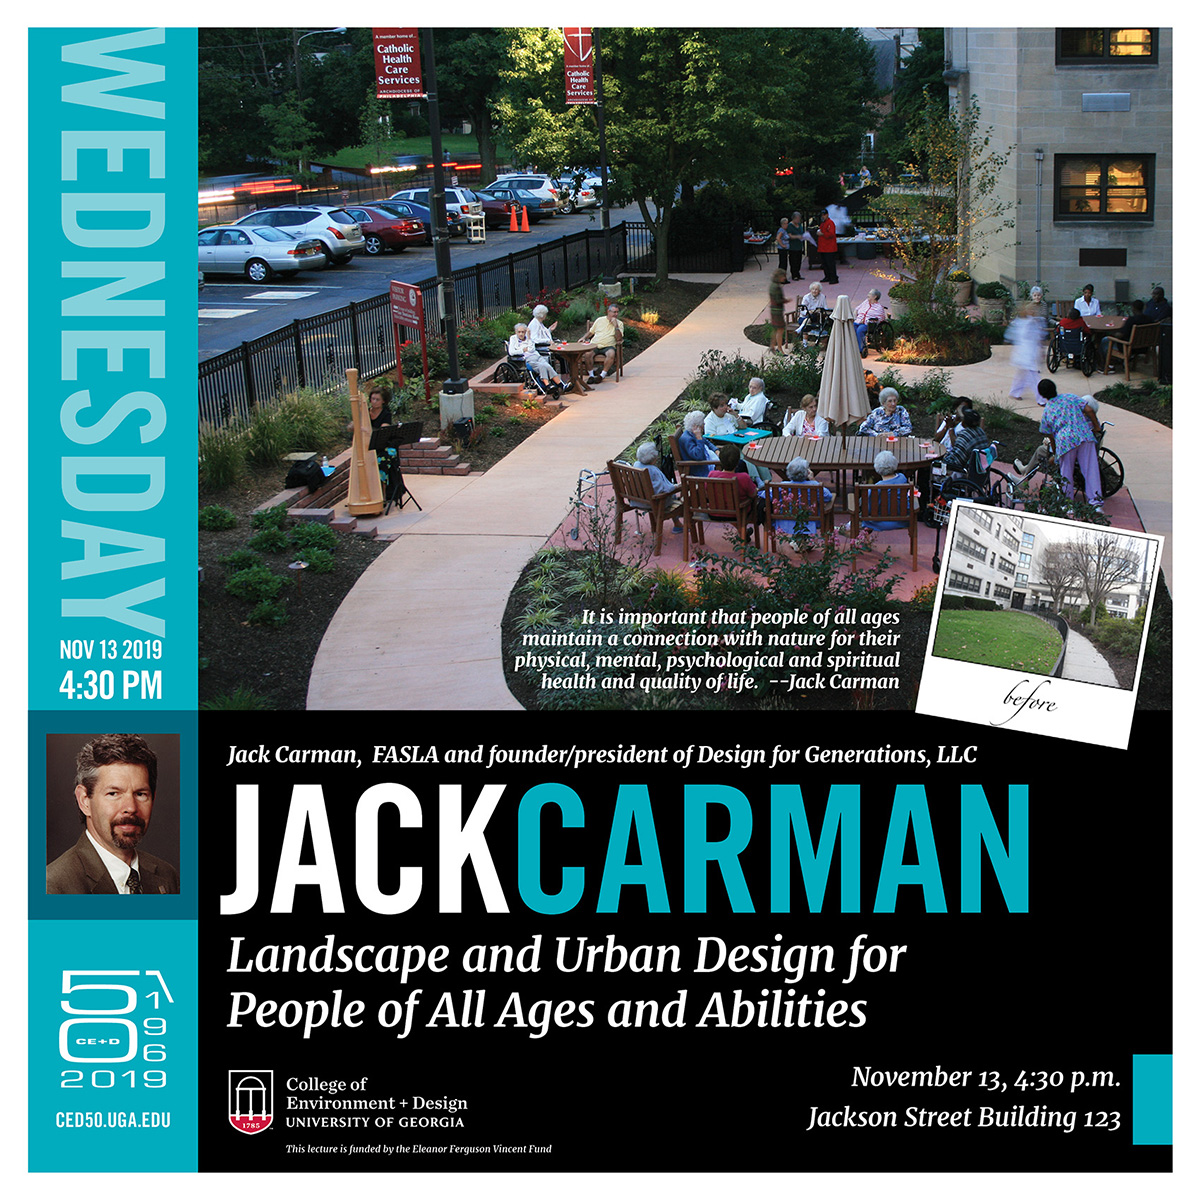 Jack Carman, FASLA, to lecture on the design of therapeutic gardens